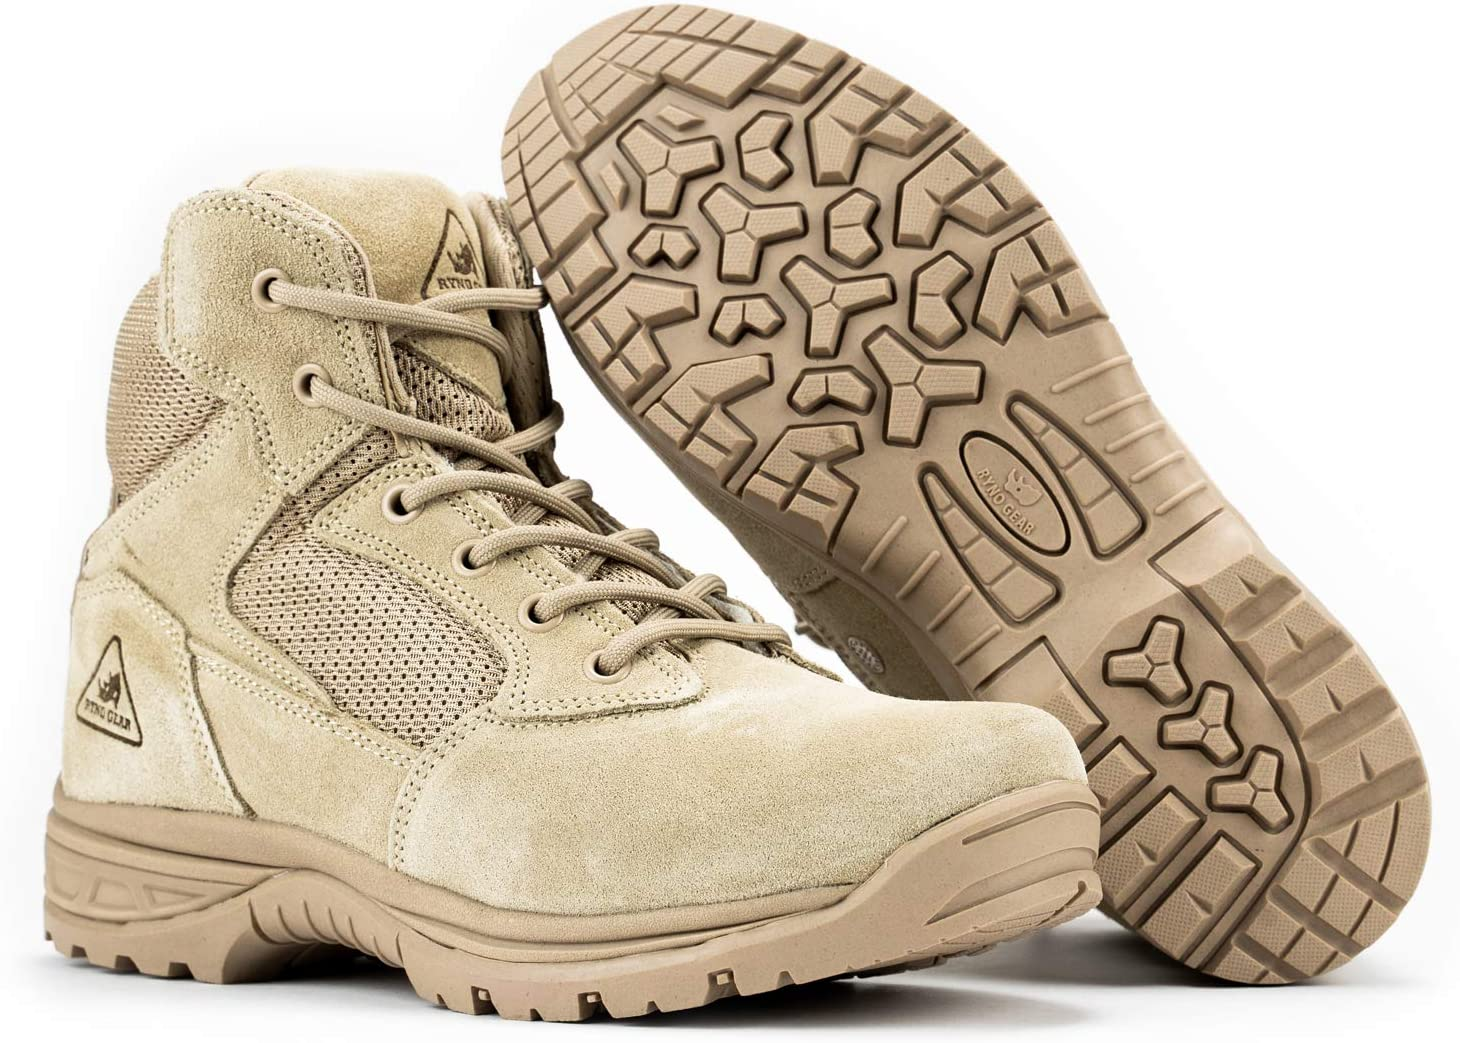 3. Ryno Gear Tactical Combat Boots with Coolmax Lining